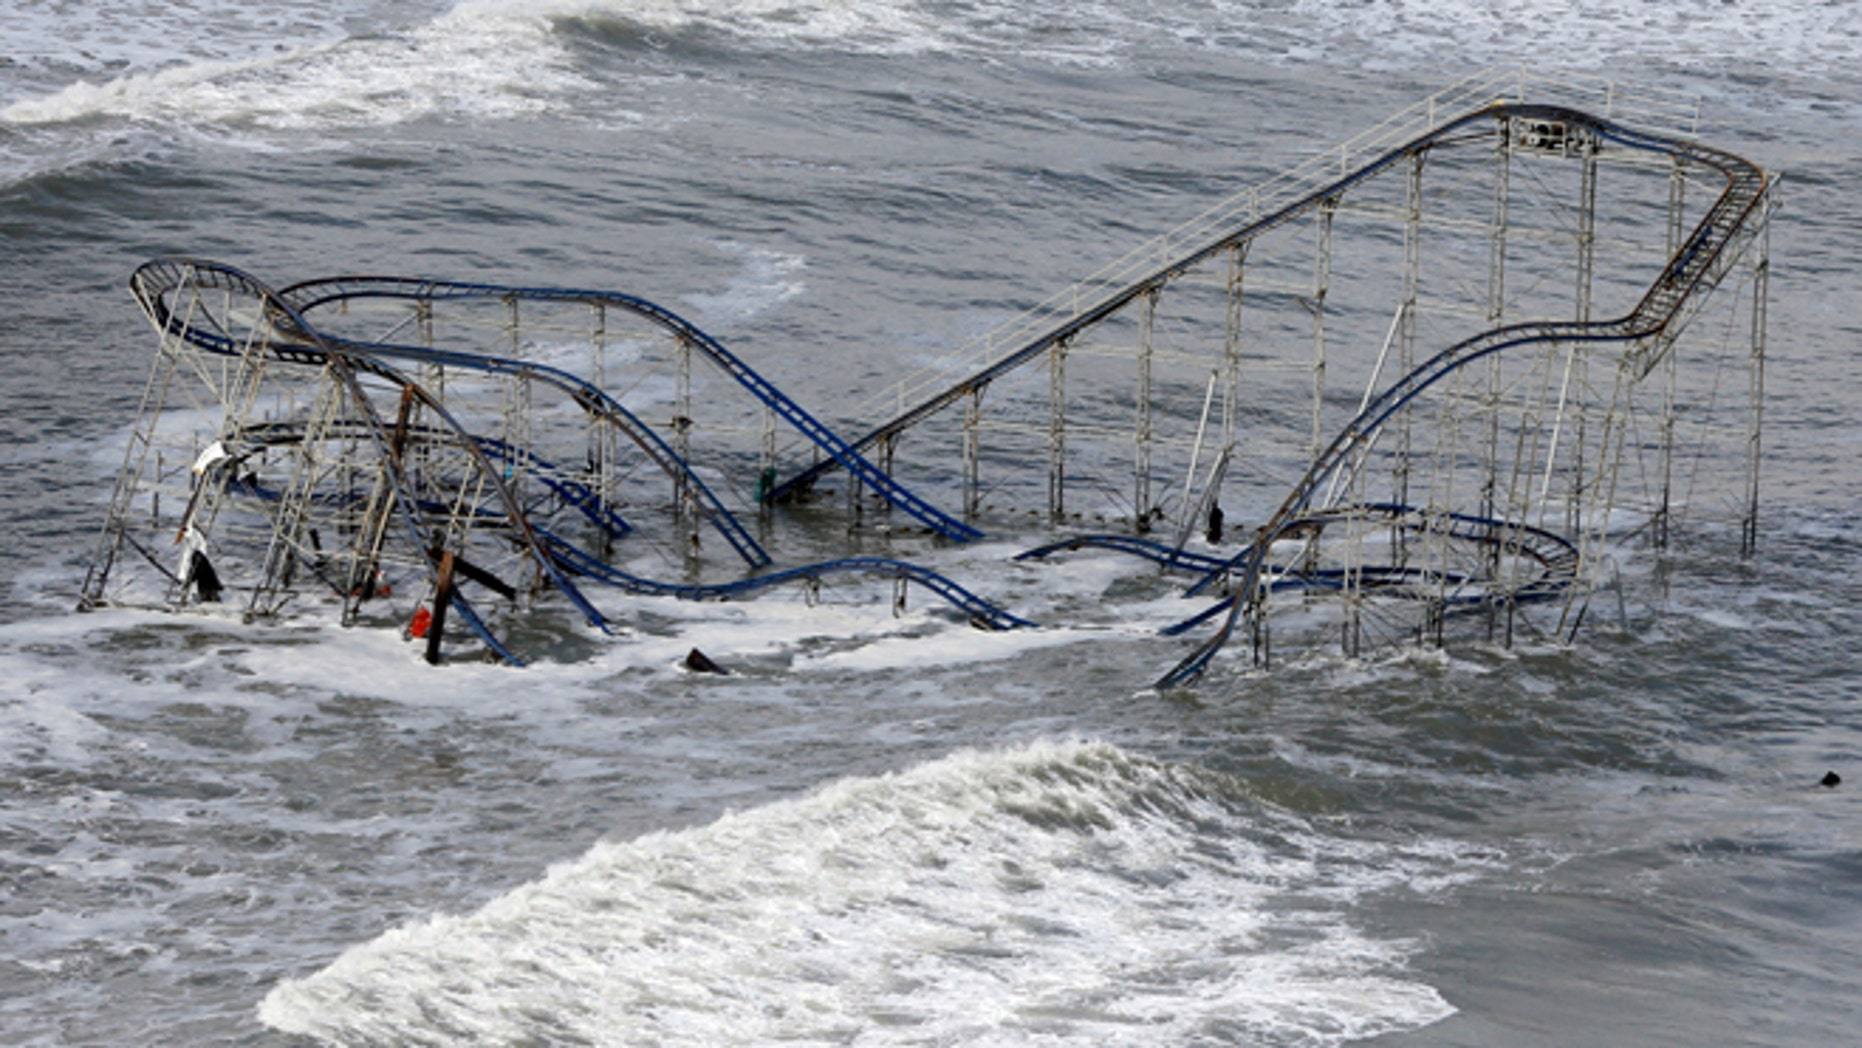 Oct. 31: Waves wash over a roller coaster from a Seaside Heights, N.J. amusement park that fell in the Atlantic Ocean during Superstorm Sandy.